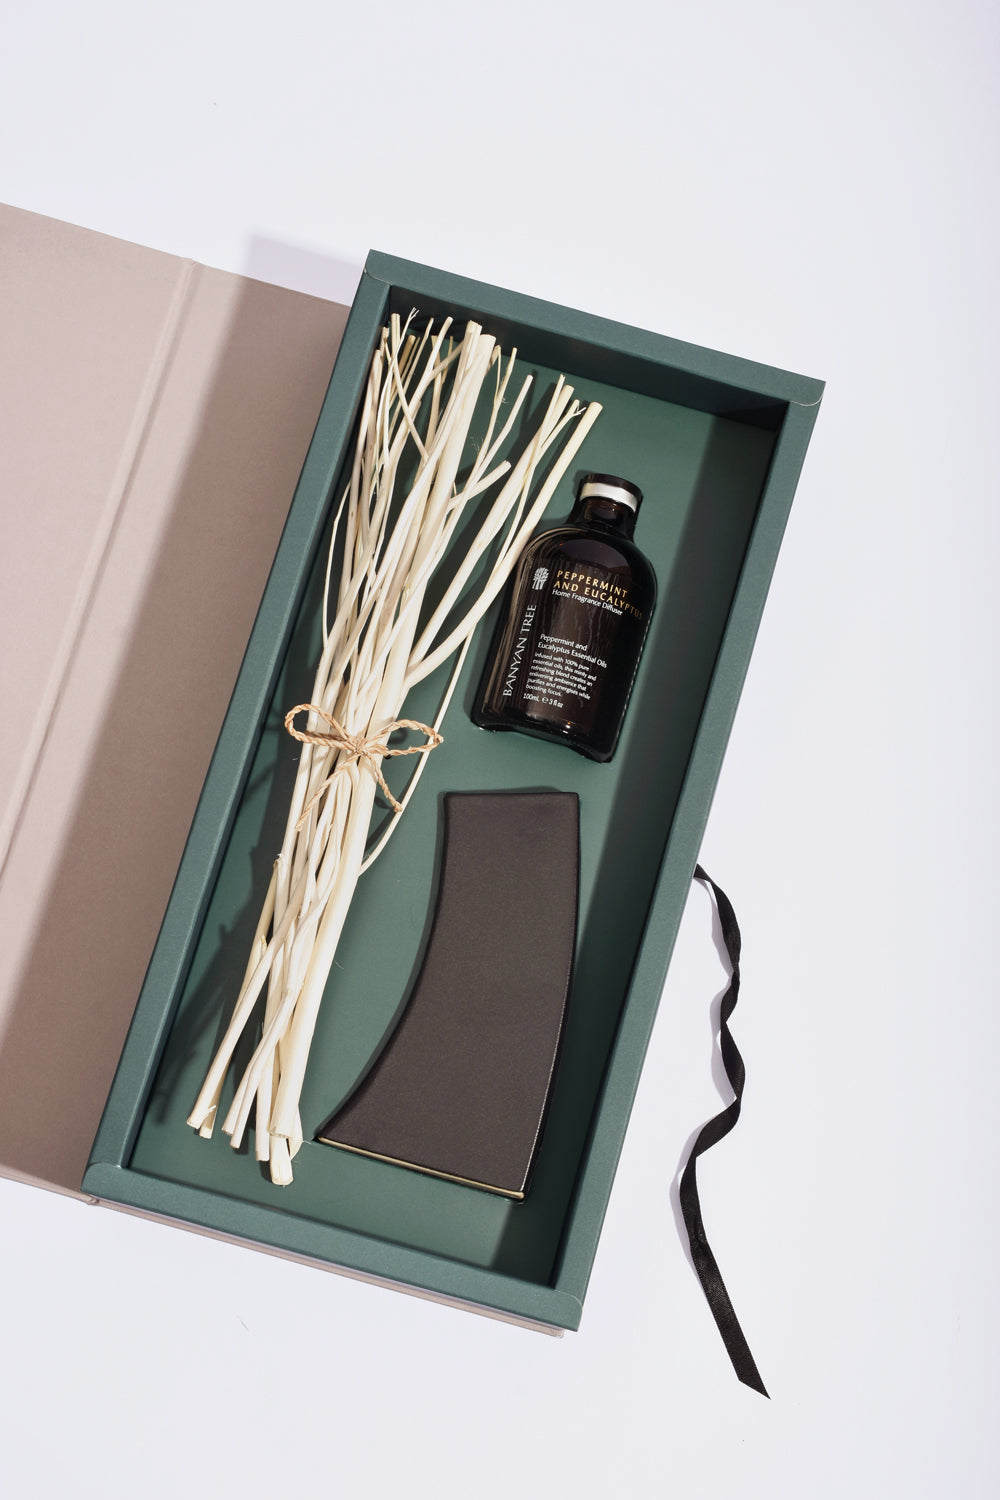 Peppermint and Eucalyptus Home Fragrance Diffuser Set - Banyan Tree Gallery